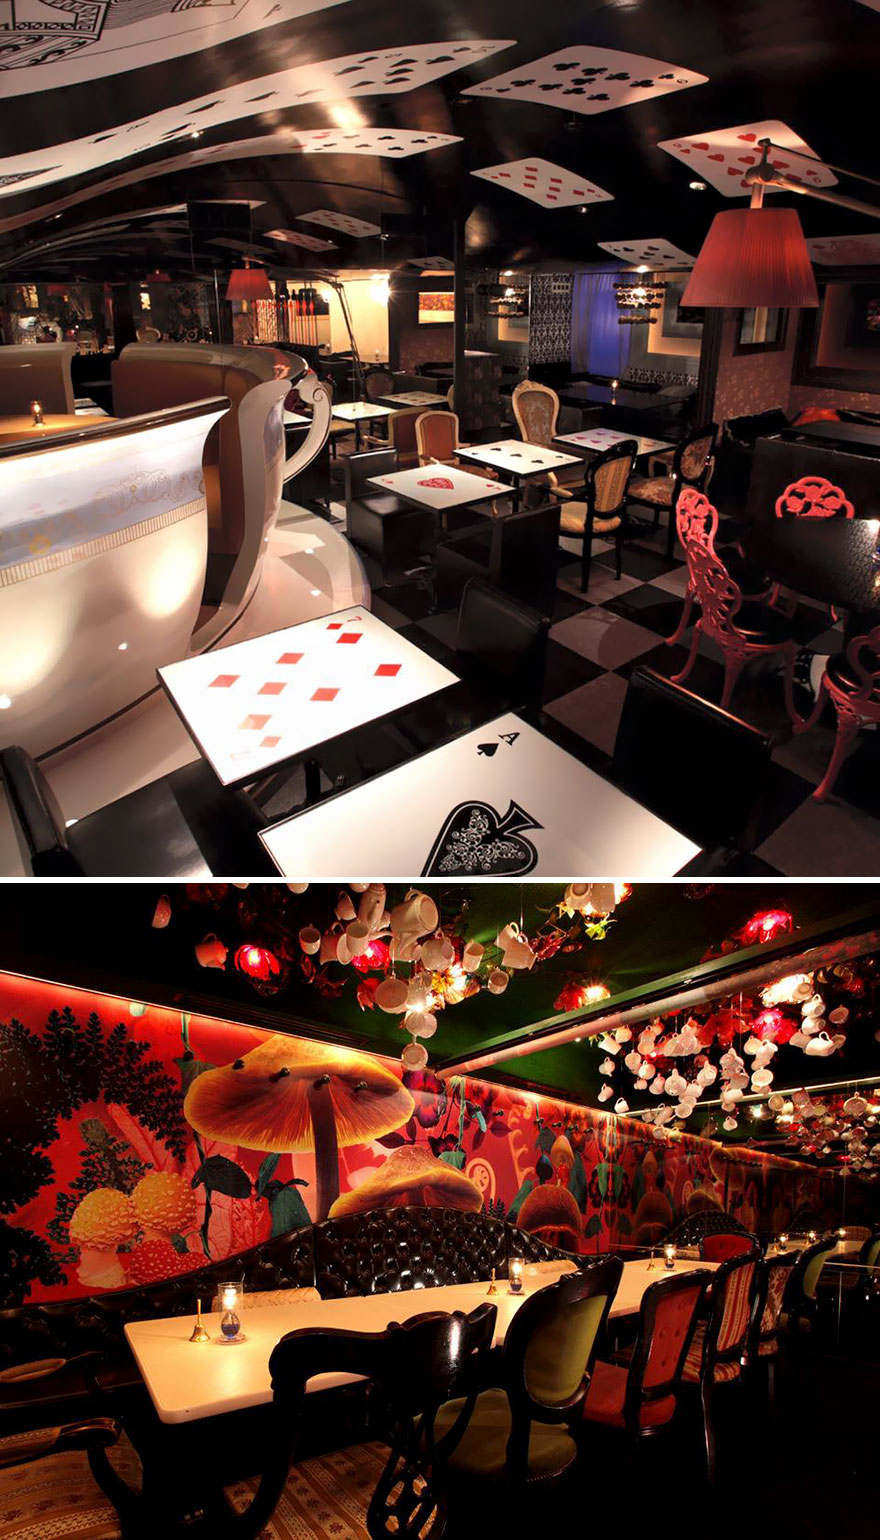 Dine In A Magical Alice World, Alice In A Labyrinth, Tokyo, Japan